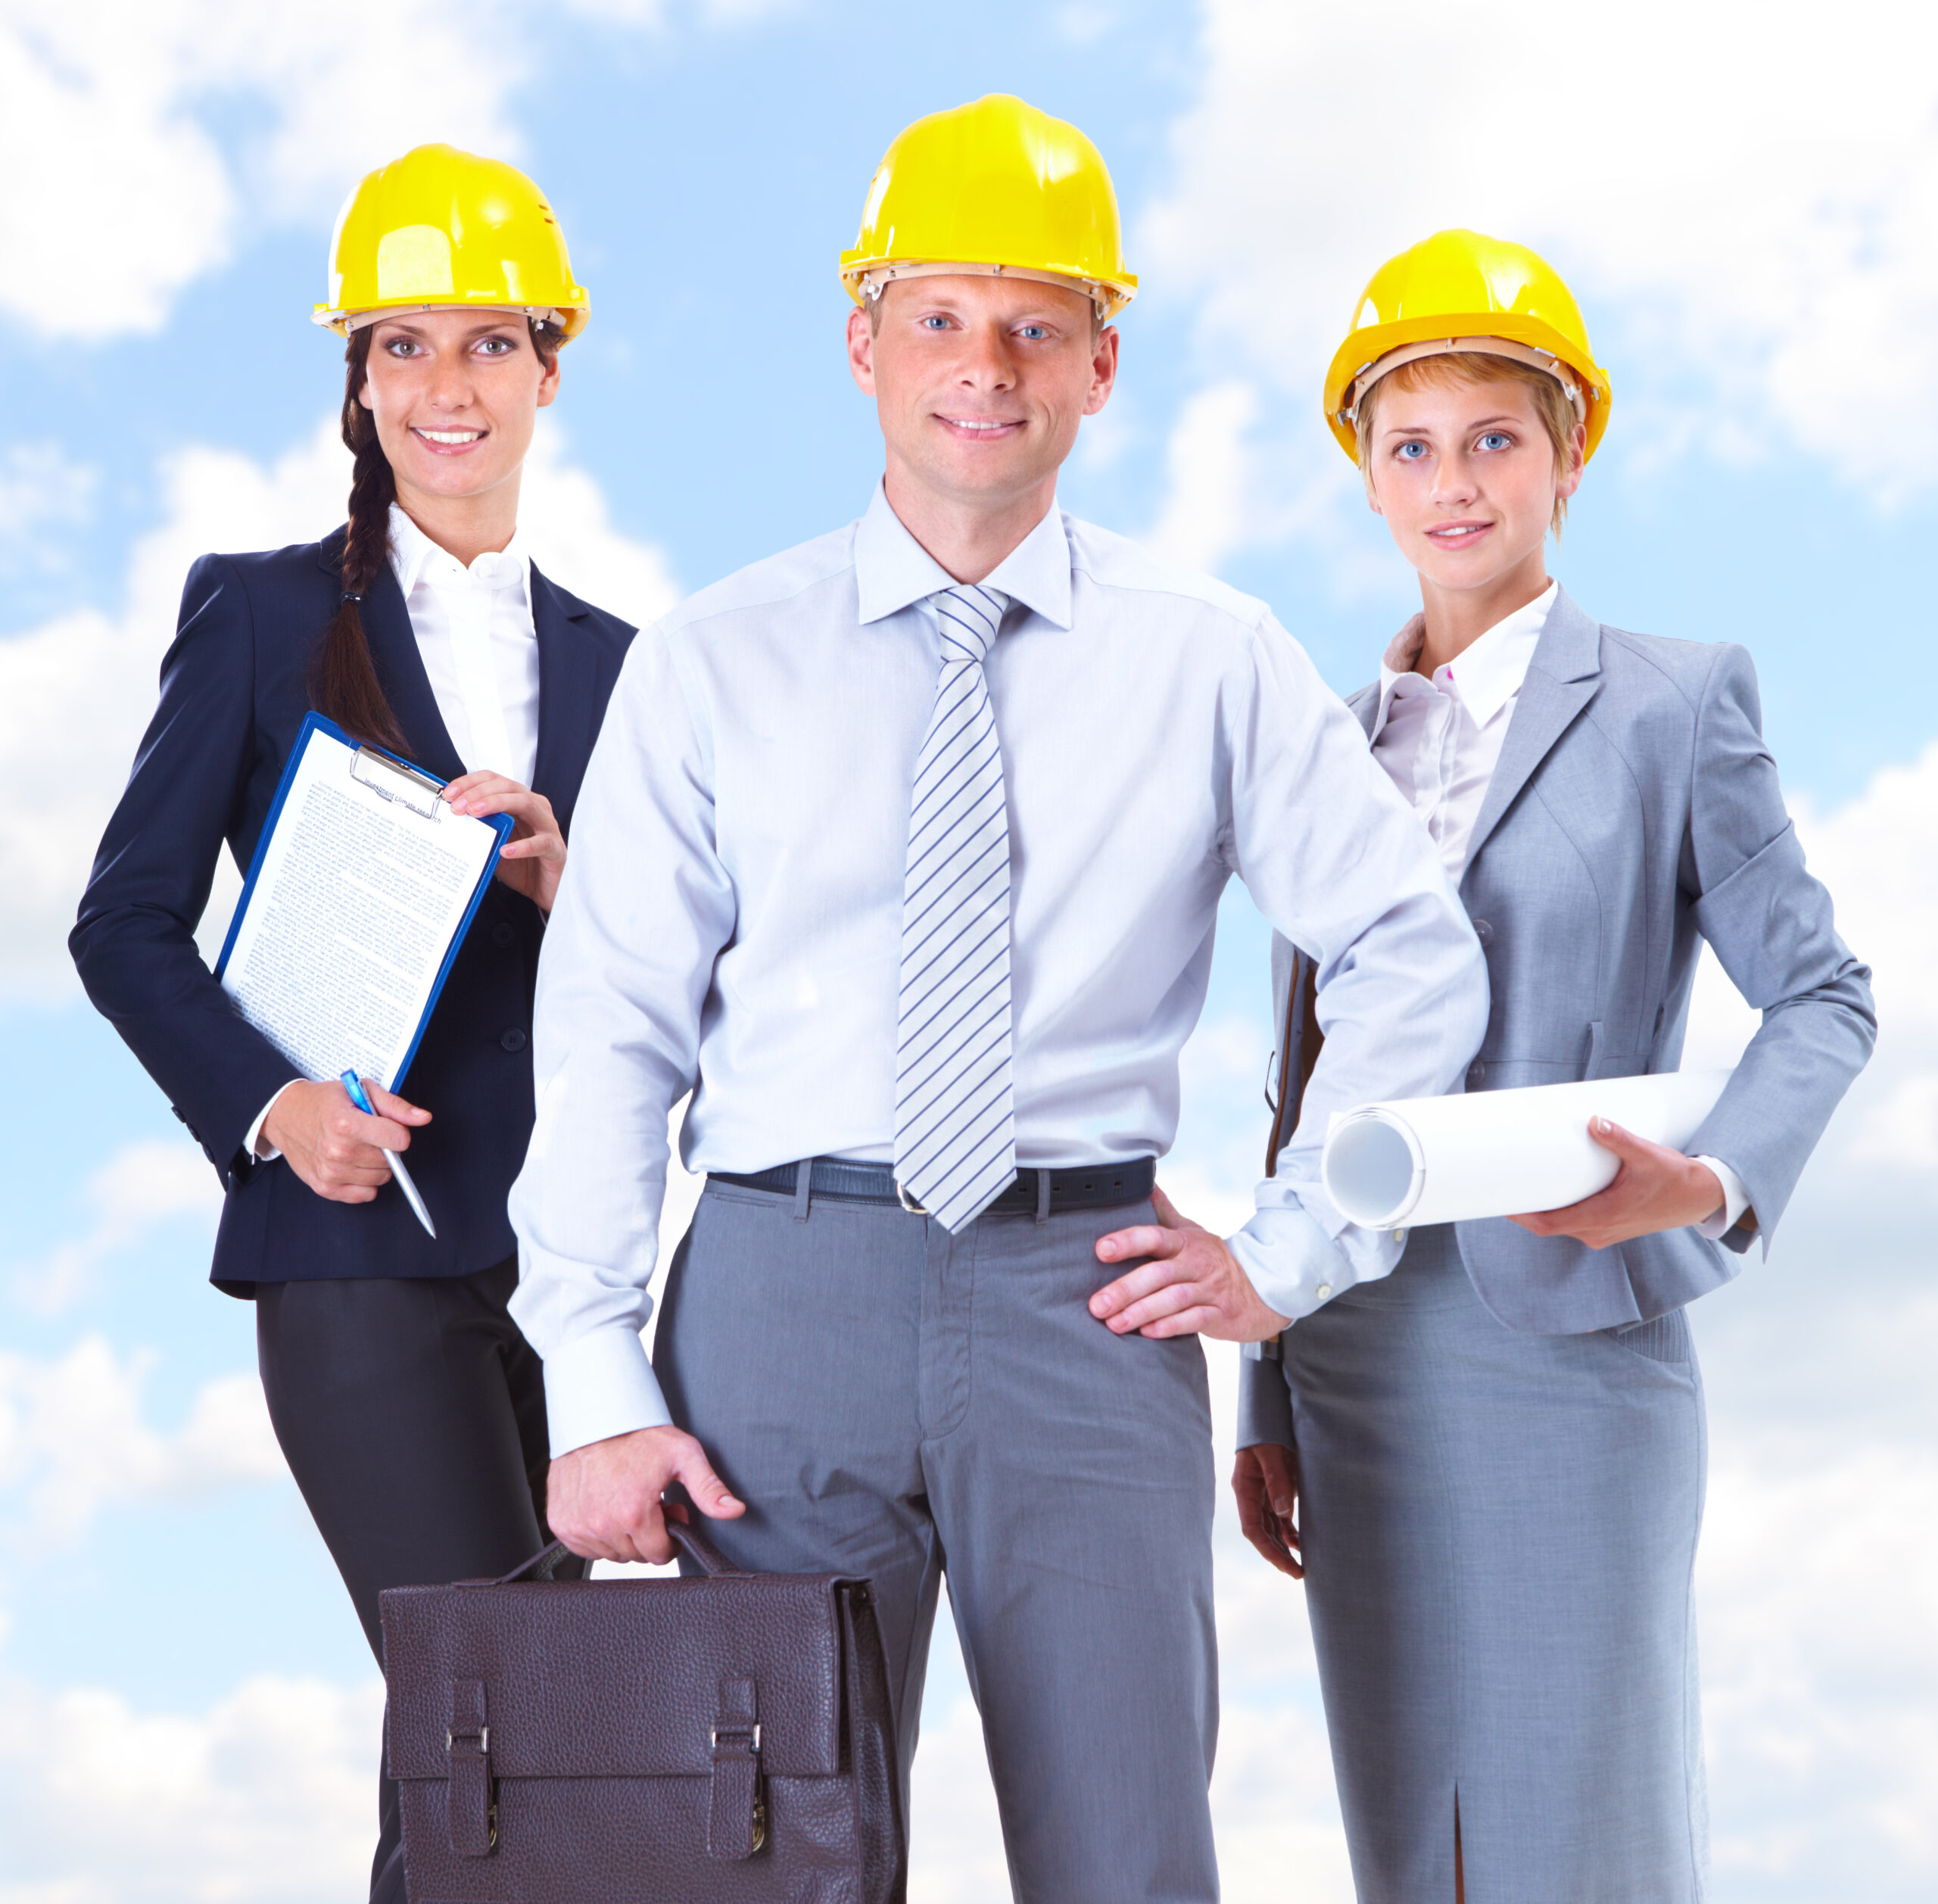 Building Inspection: Must pass 9 types of checks for the safety of building occupants